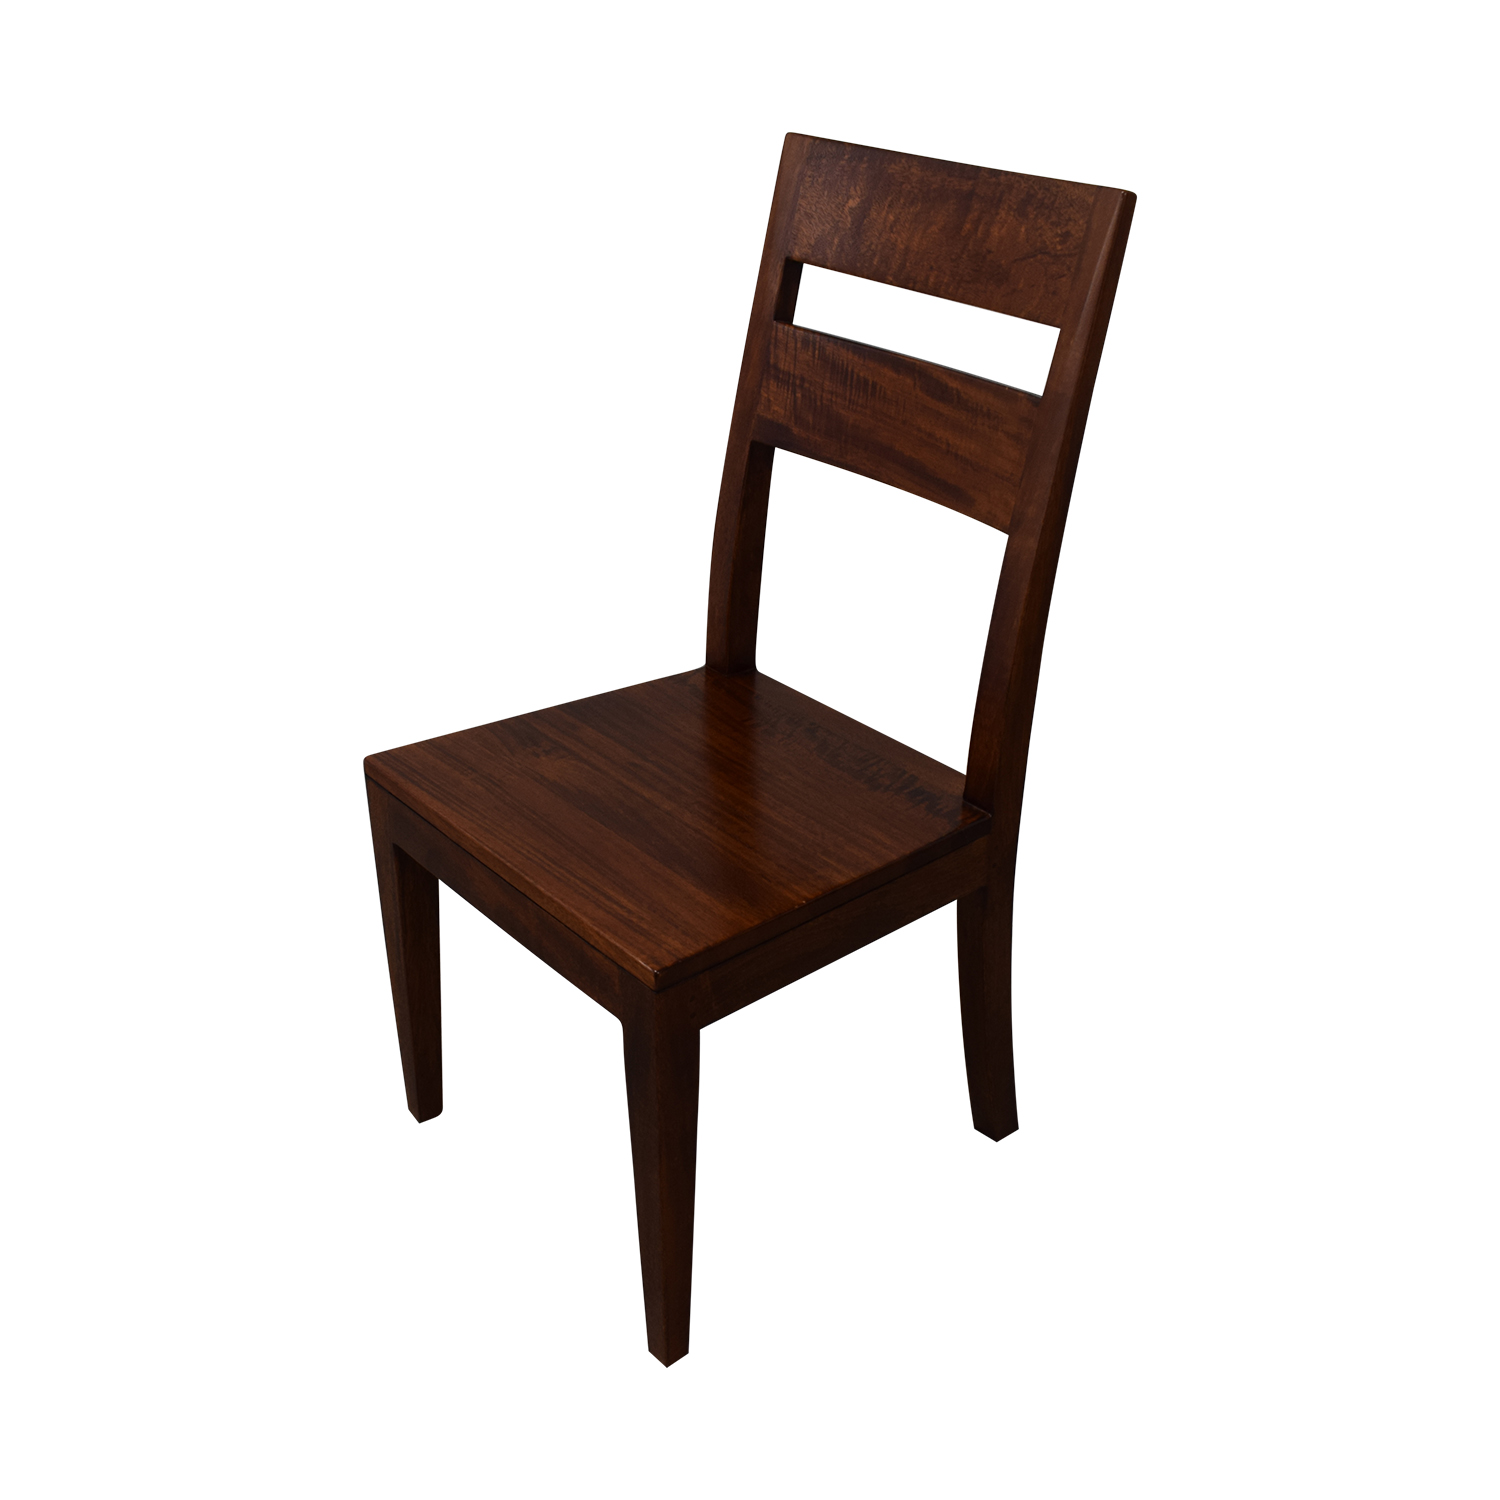 Crate & Barrel Crate & Barrel Basque Honey Wood Dining Chairs Dining Chairs